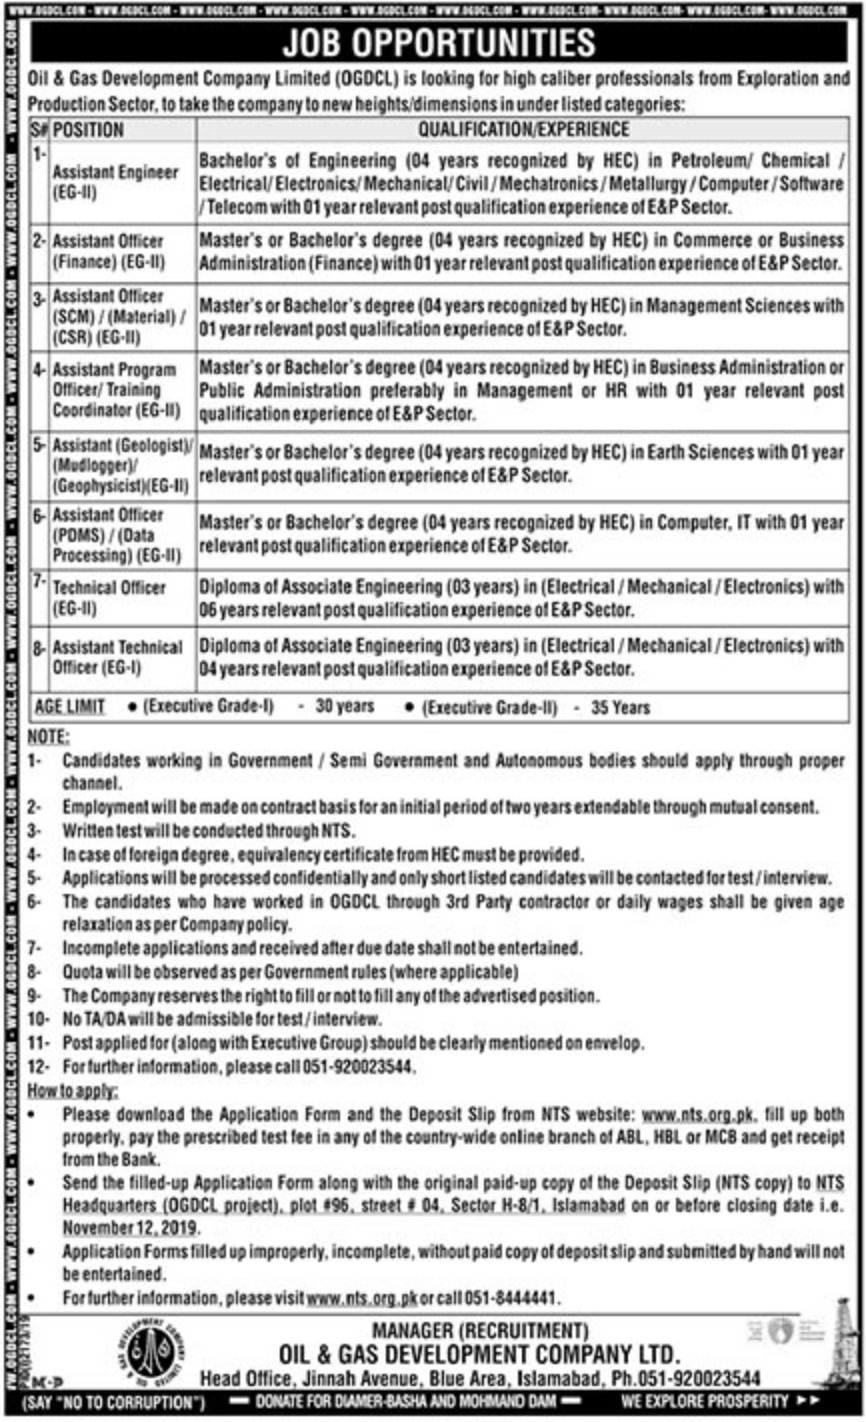 OGDCL Jobs 2019 Oil & Gas Development Company Limited